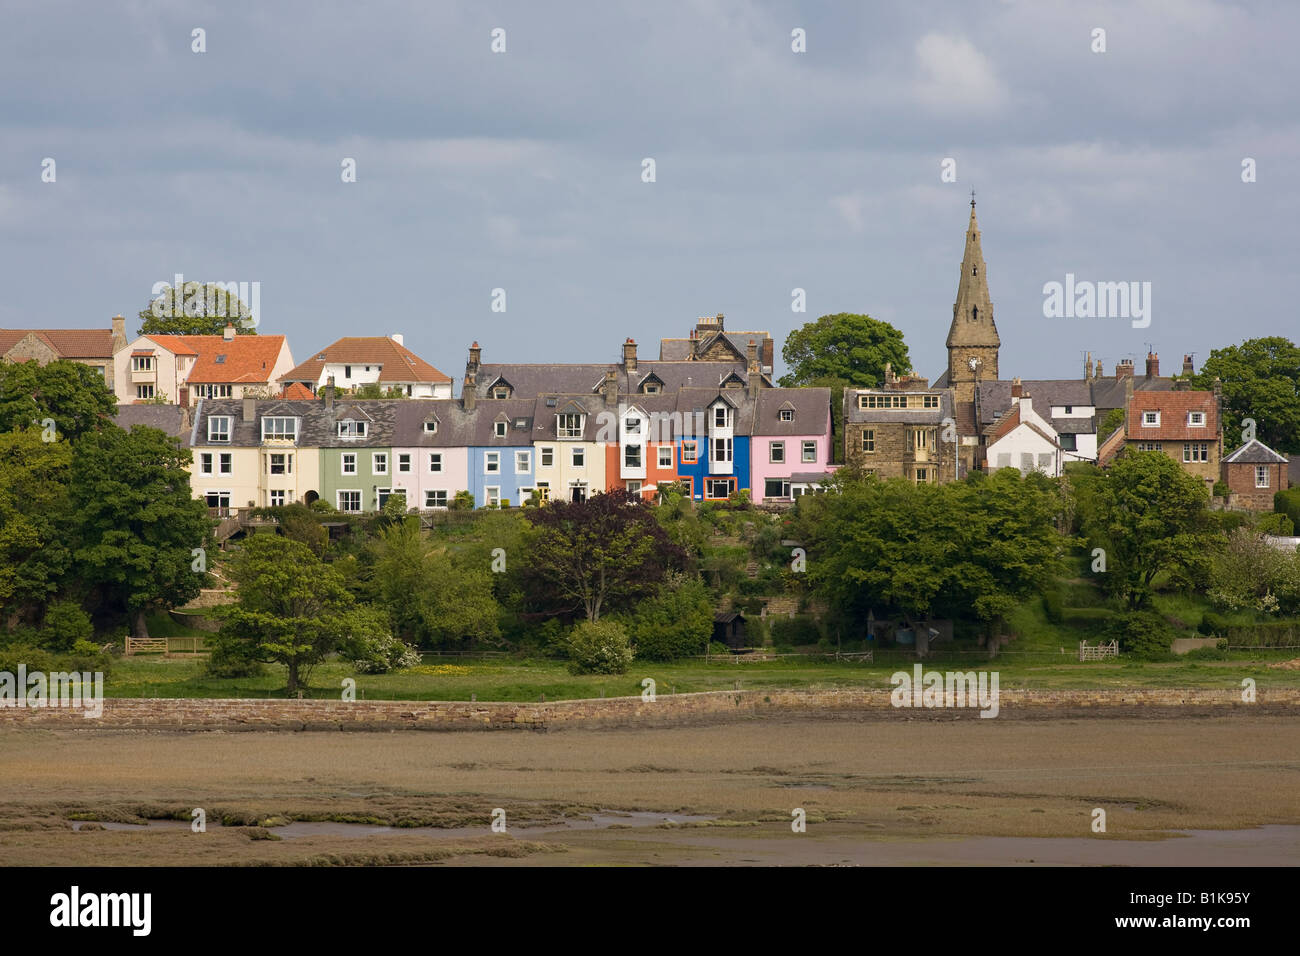 Northumbrie Alnmouth Photo Stock